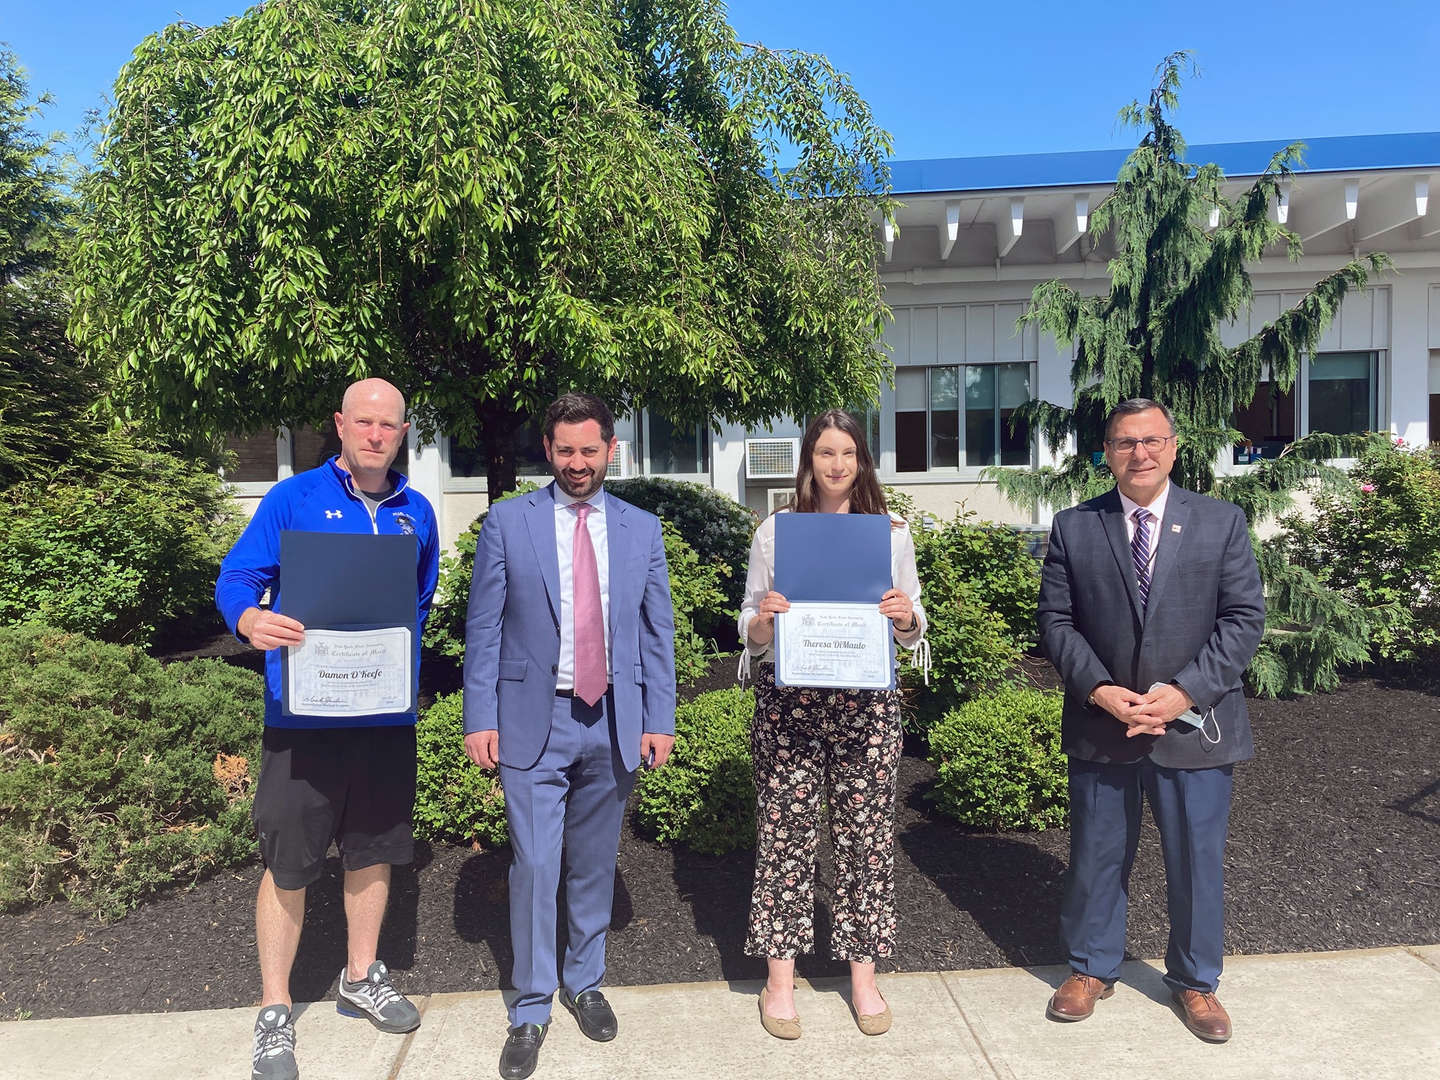 """NYS Assemblyman Mike Lawler presents PRHS Teacher Damon O'Keefe and Evans Park teacher Theresa DiMaulo with """"Best in Assembly District 97 Teacher"""" certificates!"""